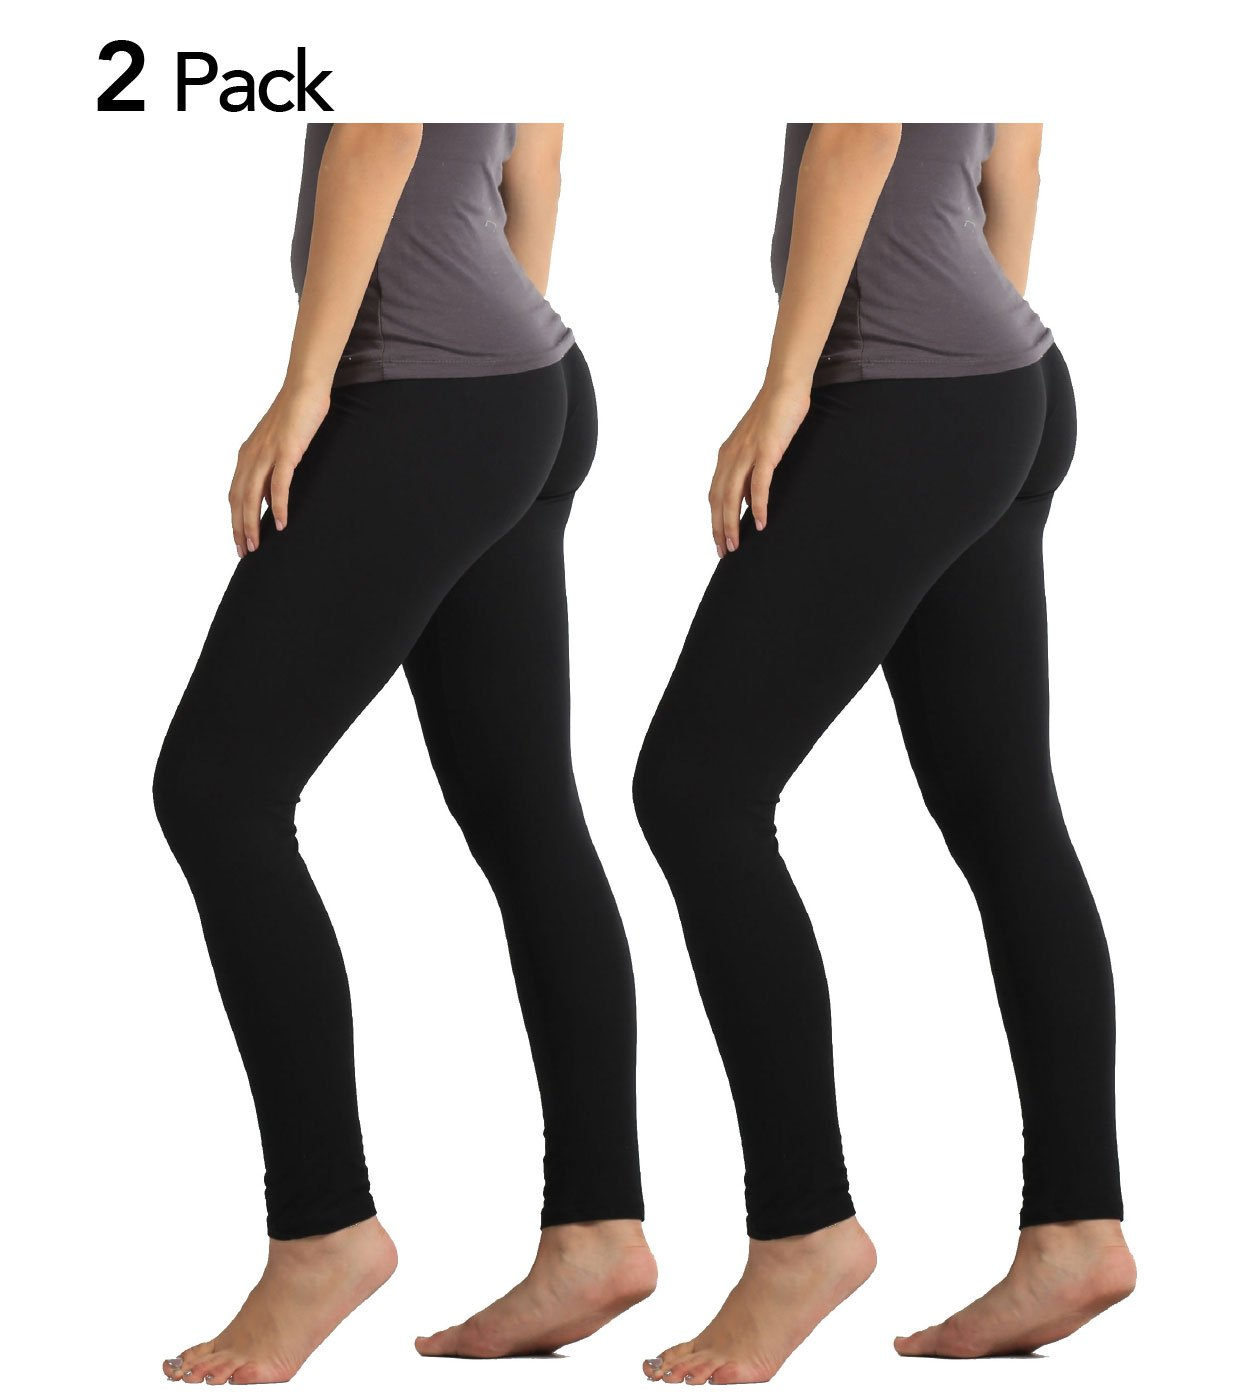 Premium Ultra Soft High Waist Leggings for Women - 2-Pack Black - Large/X-Large